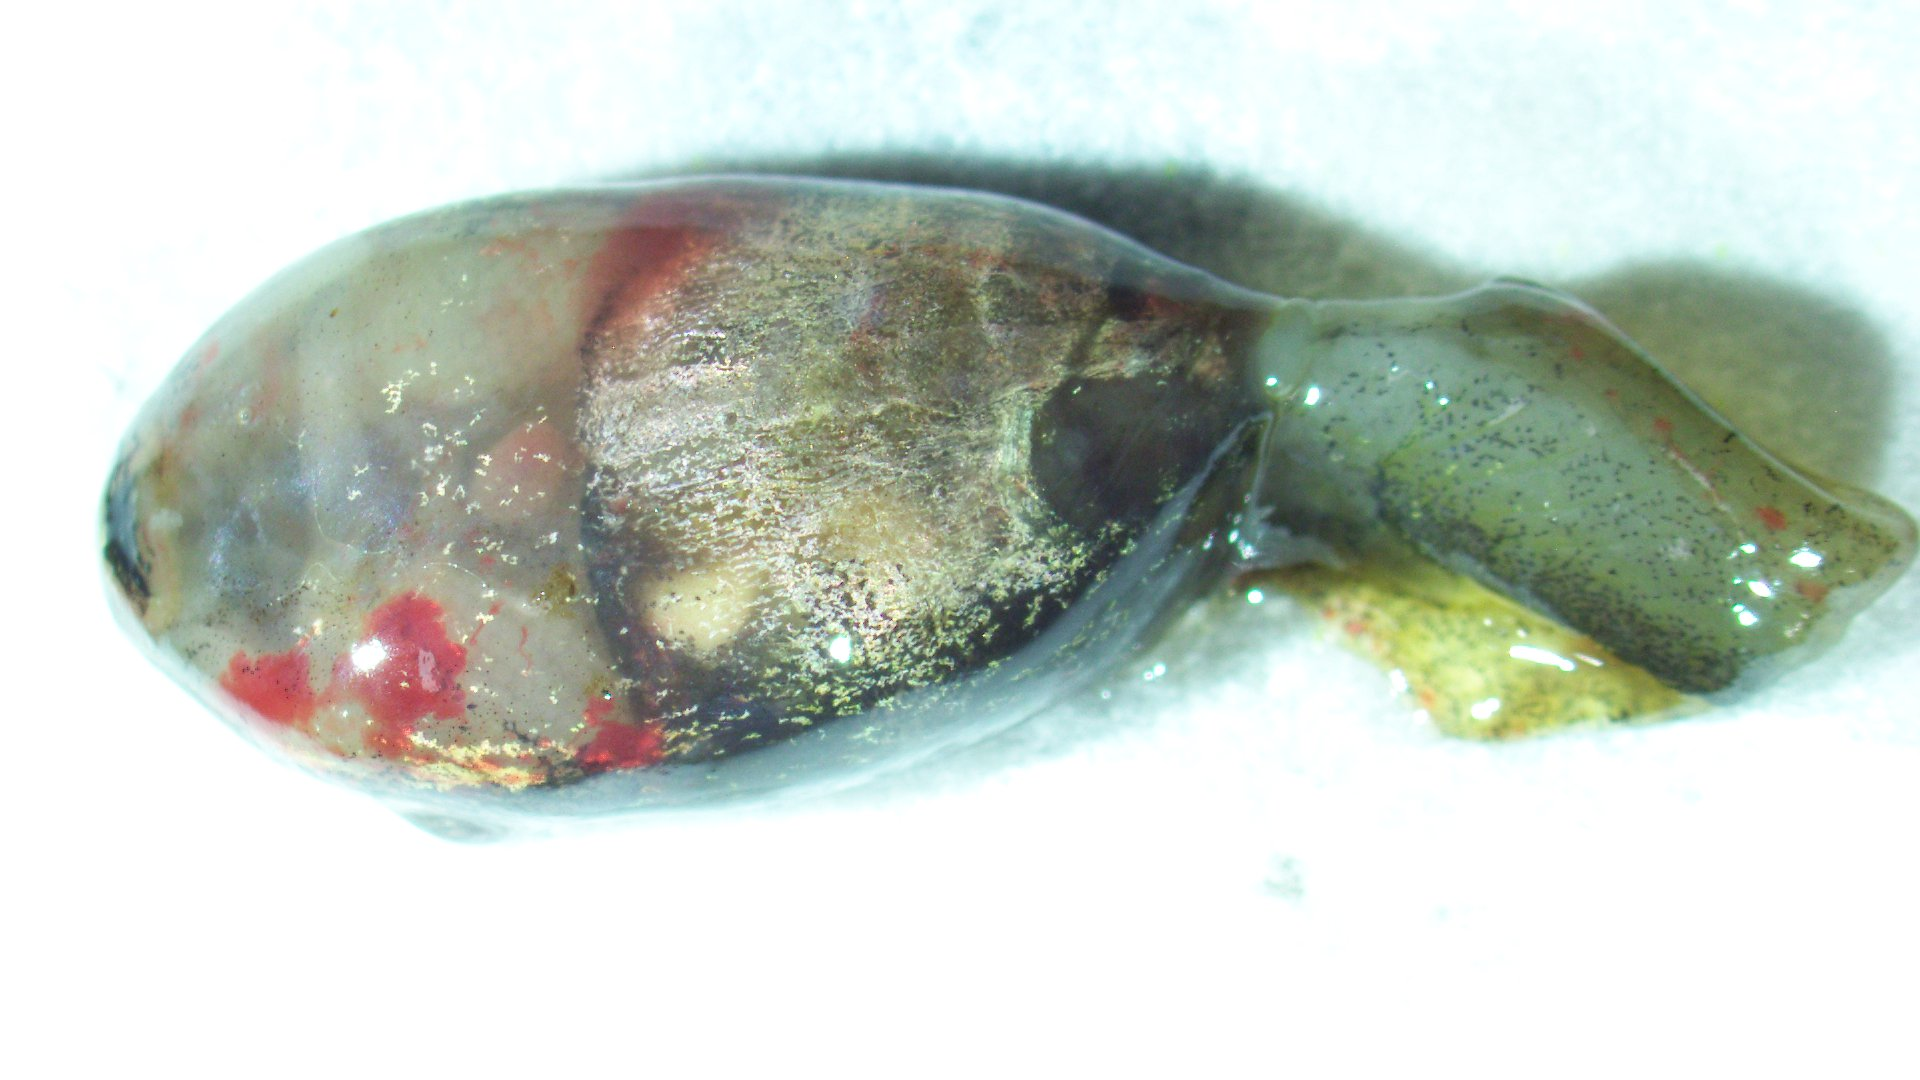 tadpole with discolored body